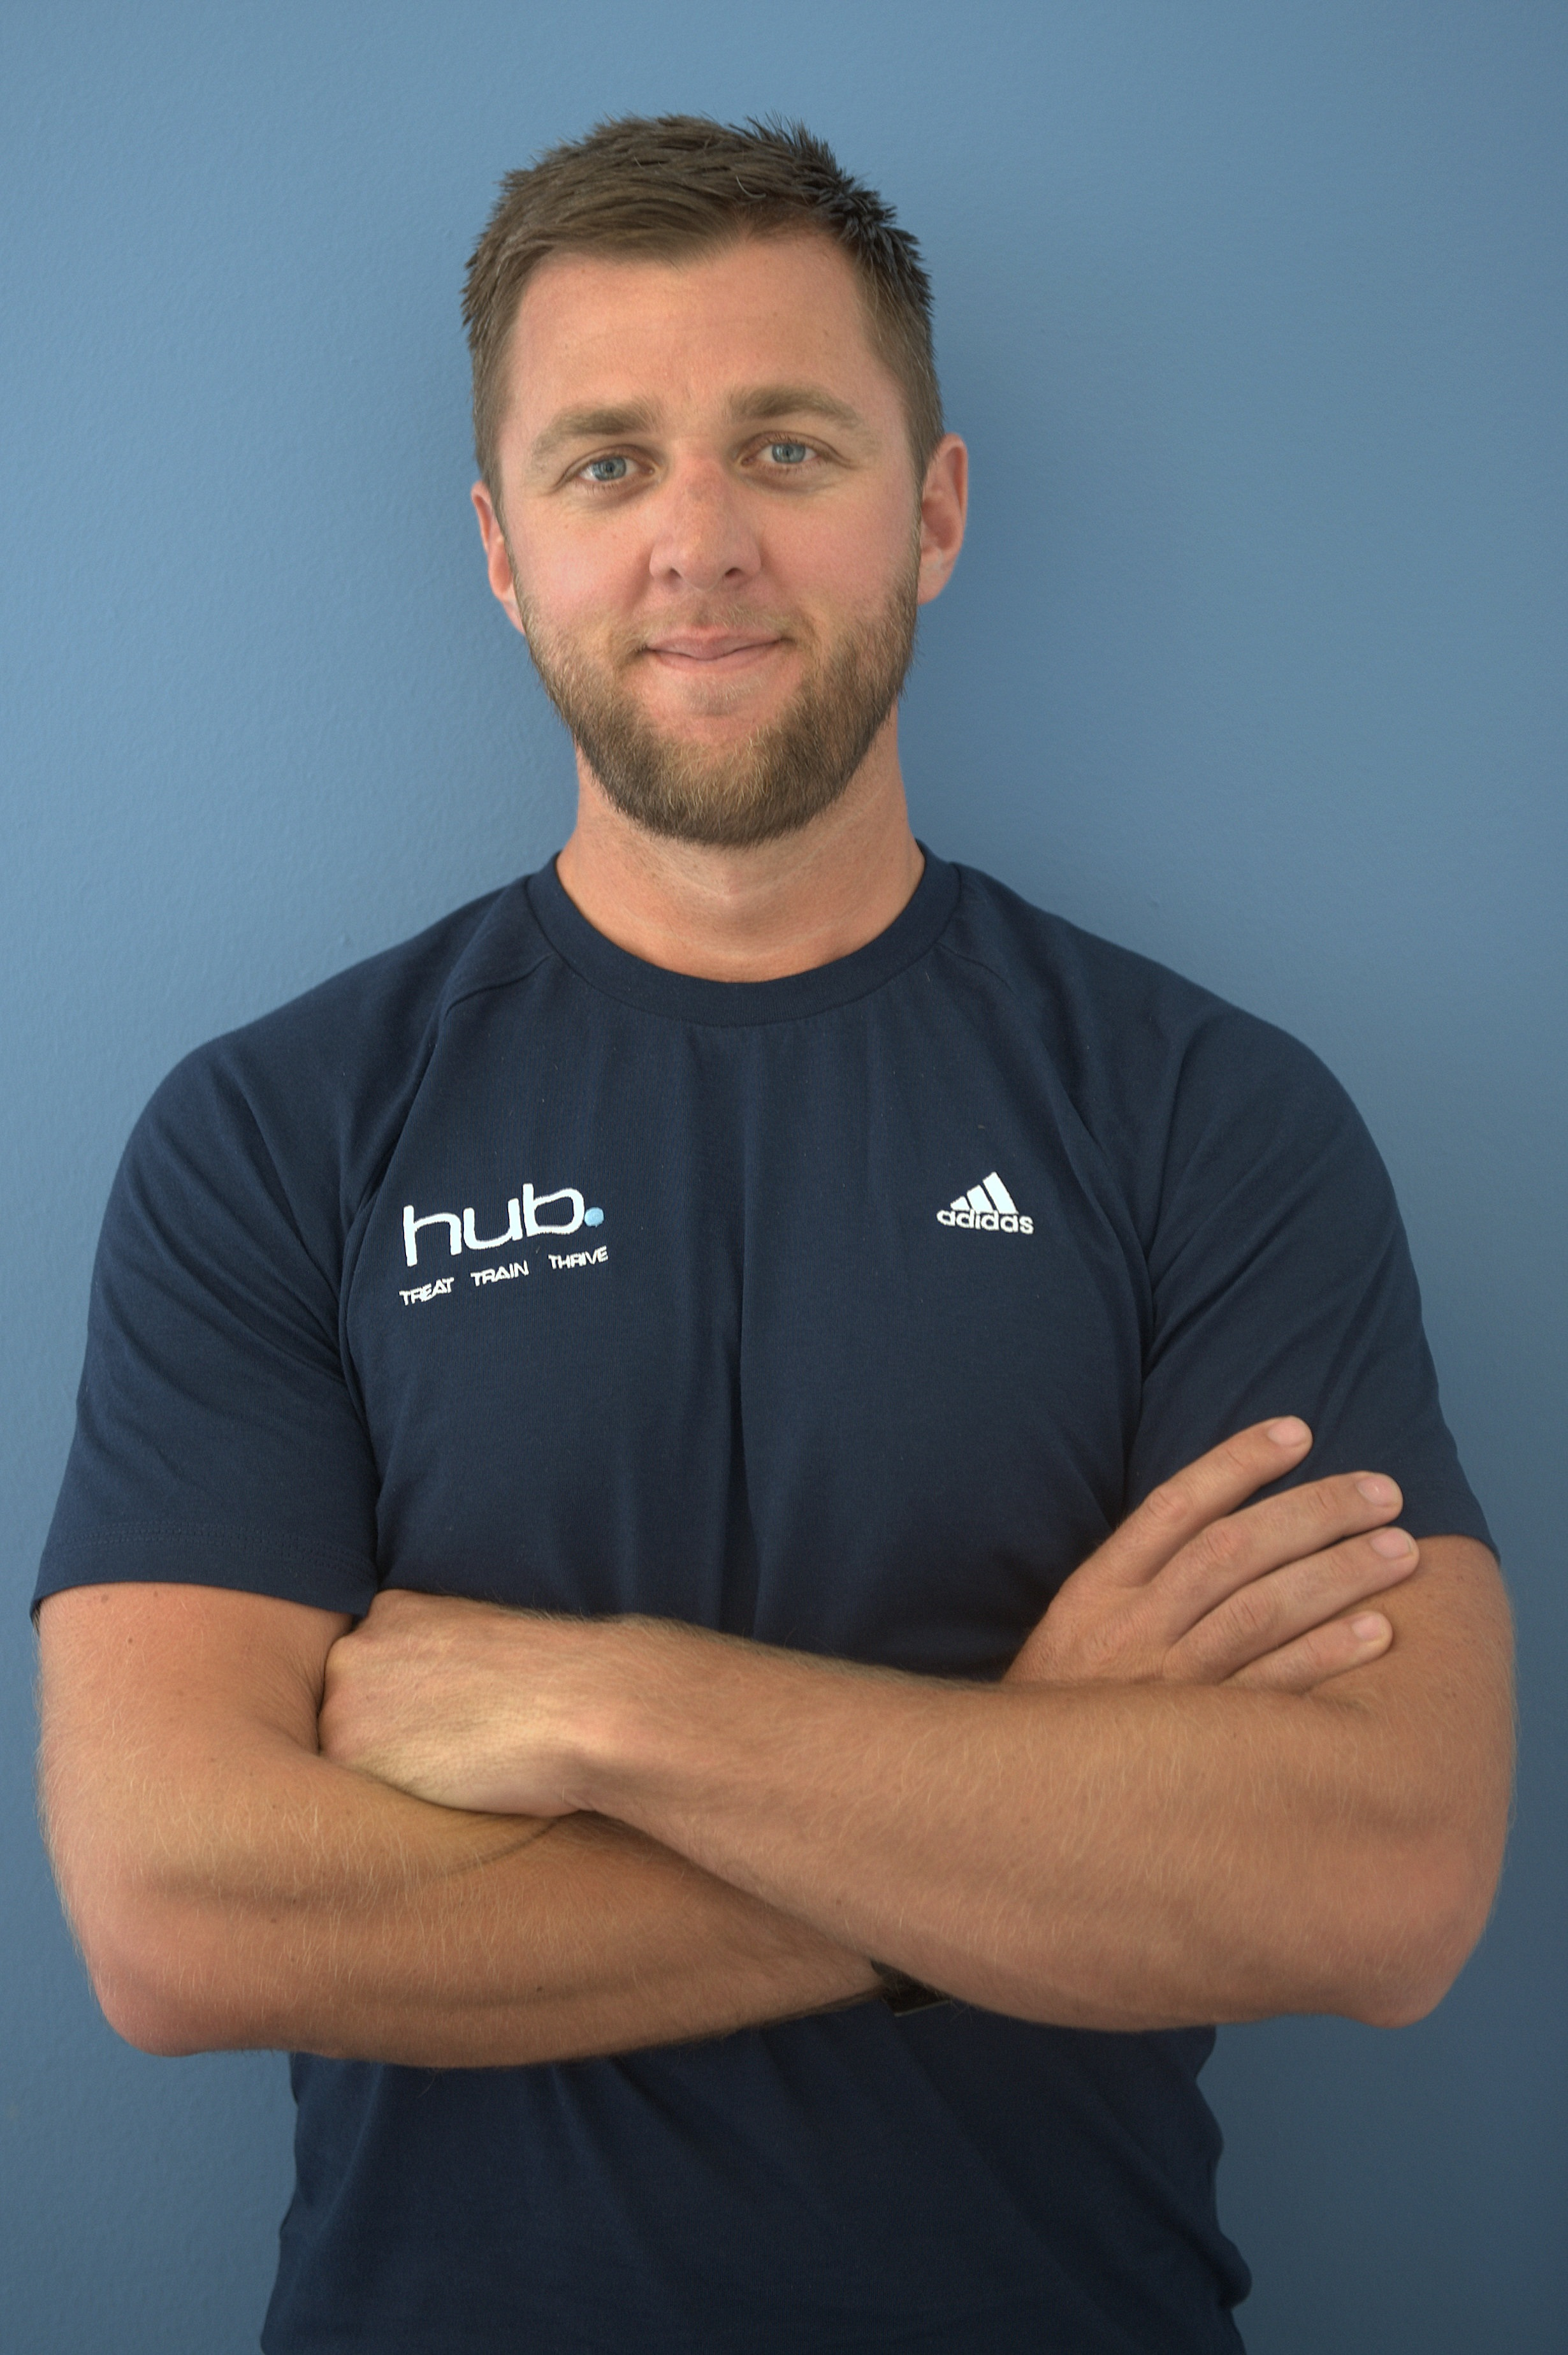 Shane Rutherford Lead Personal Trainer at Hub Performance Clapham